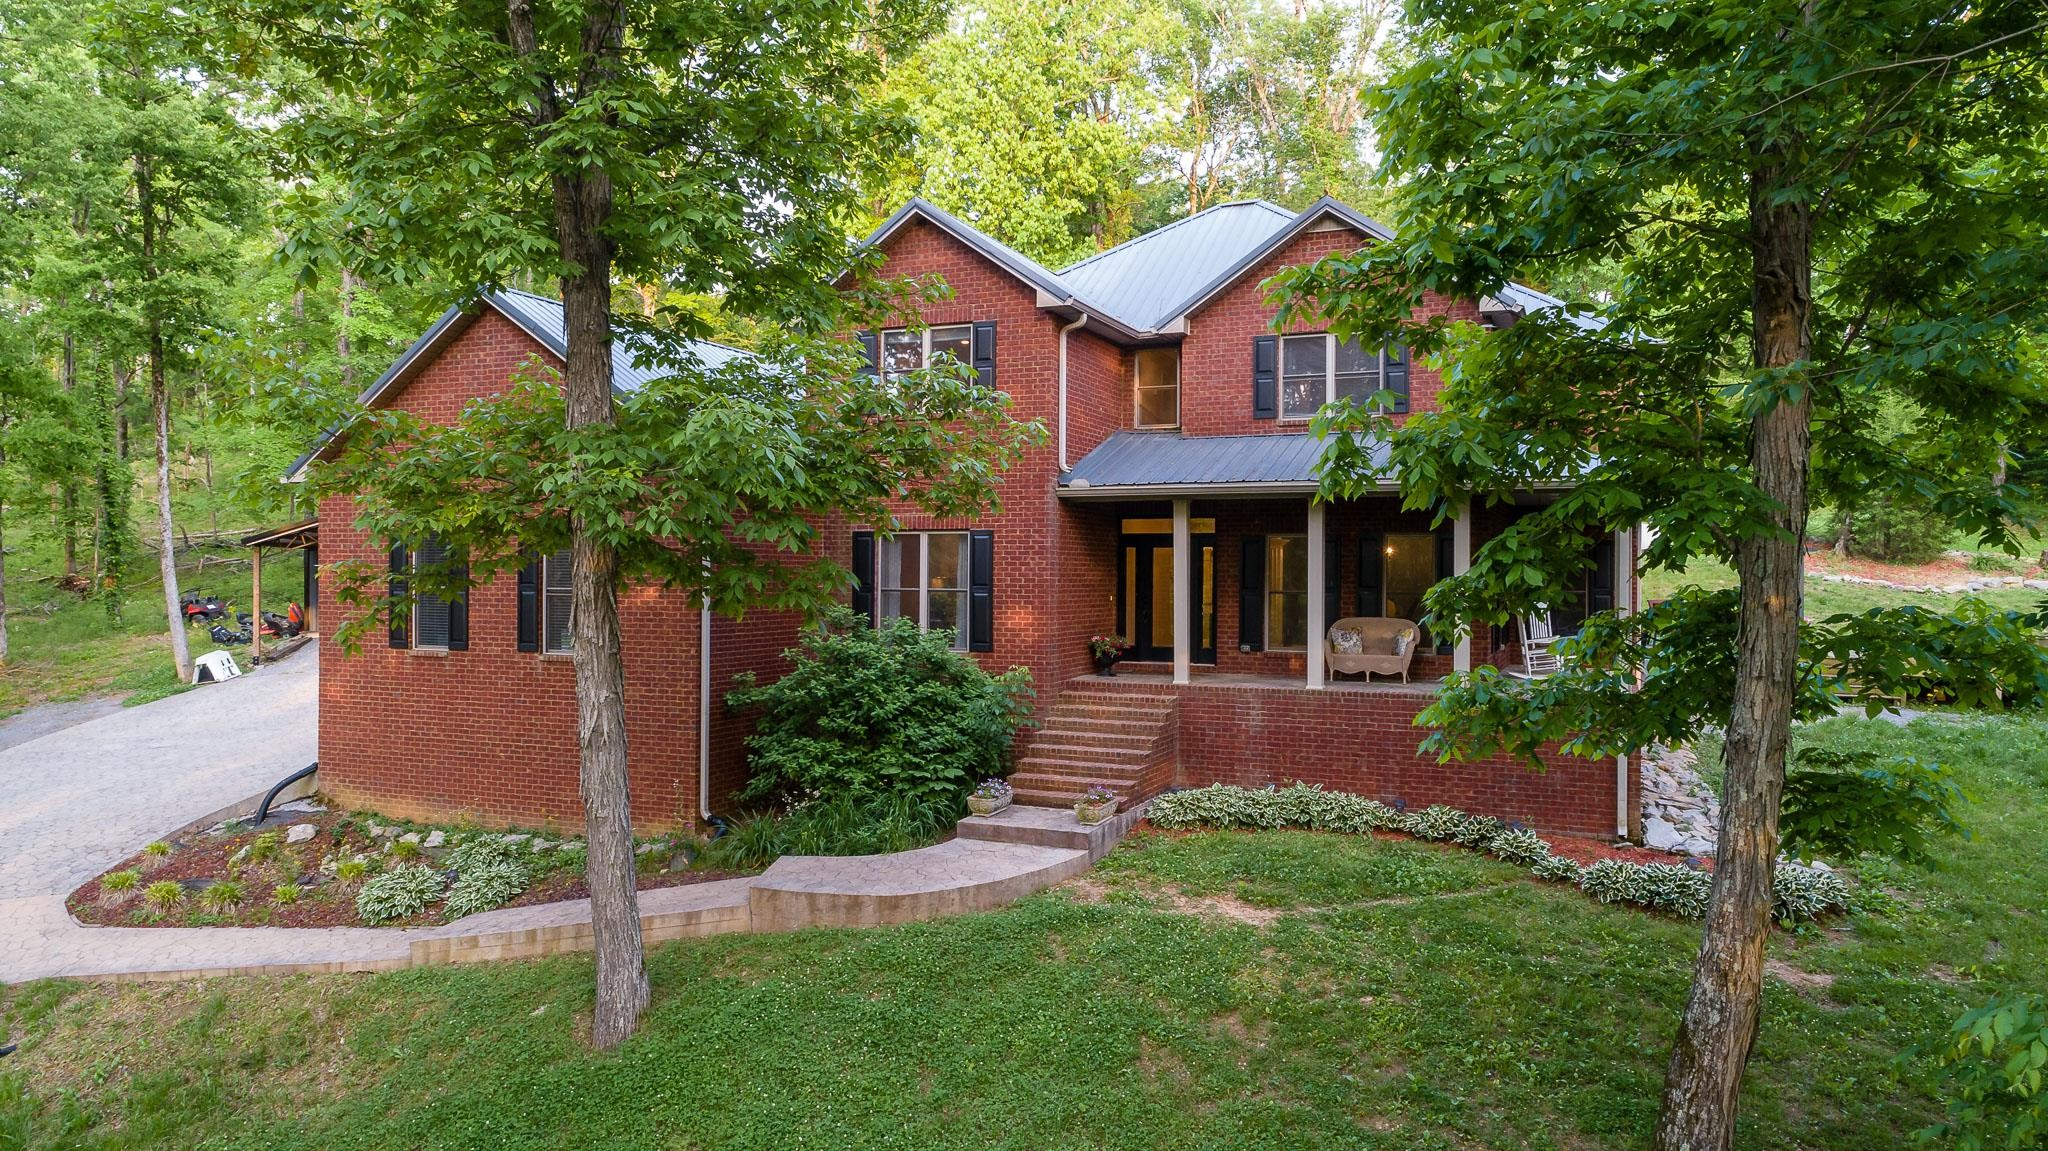 232 Vince Rd, Bell Buckle, TN 37020 - Bell Buckle, TN real estate listing